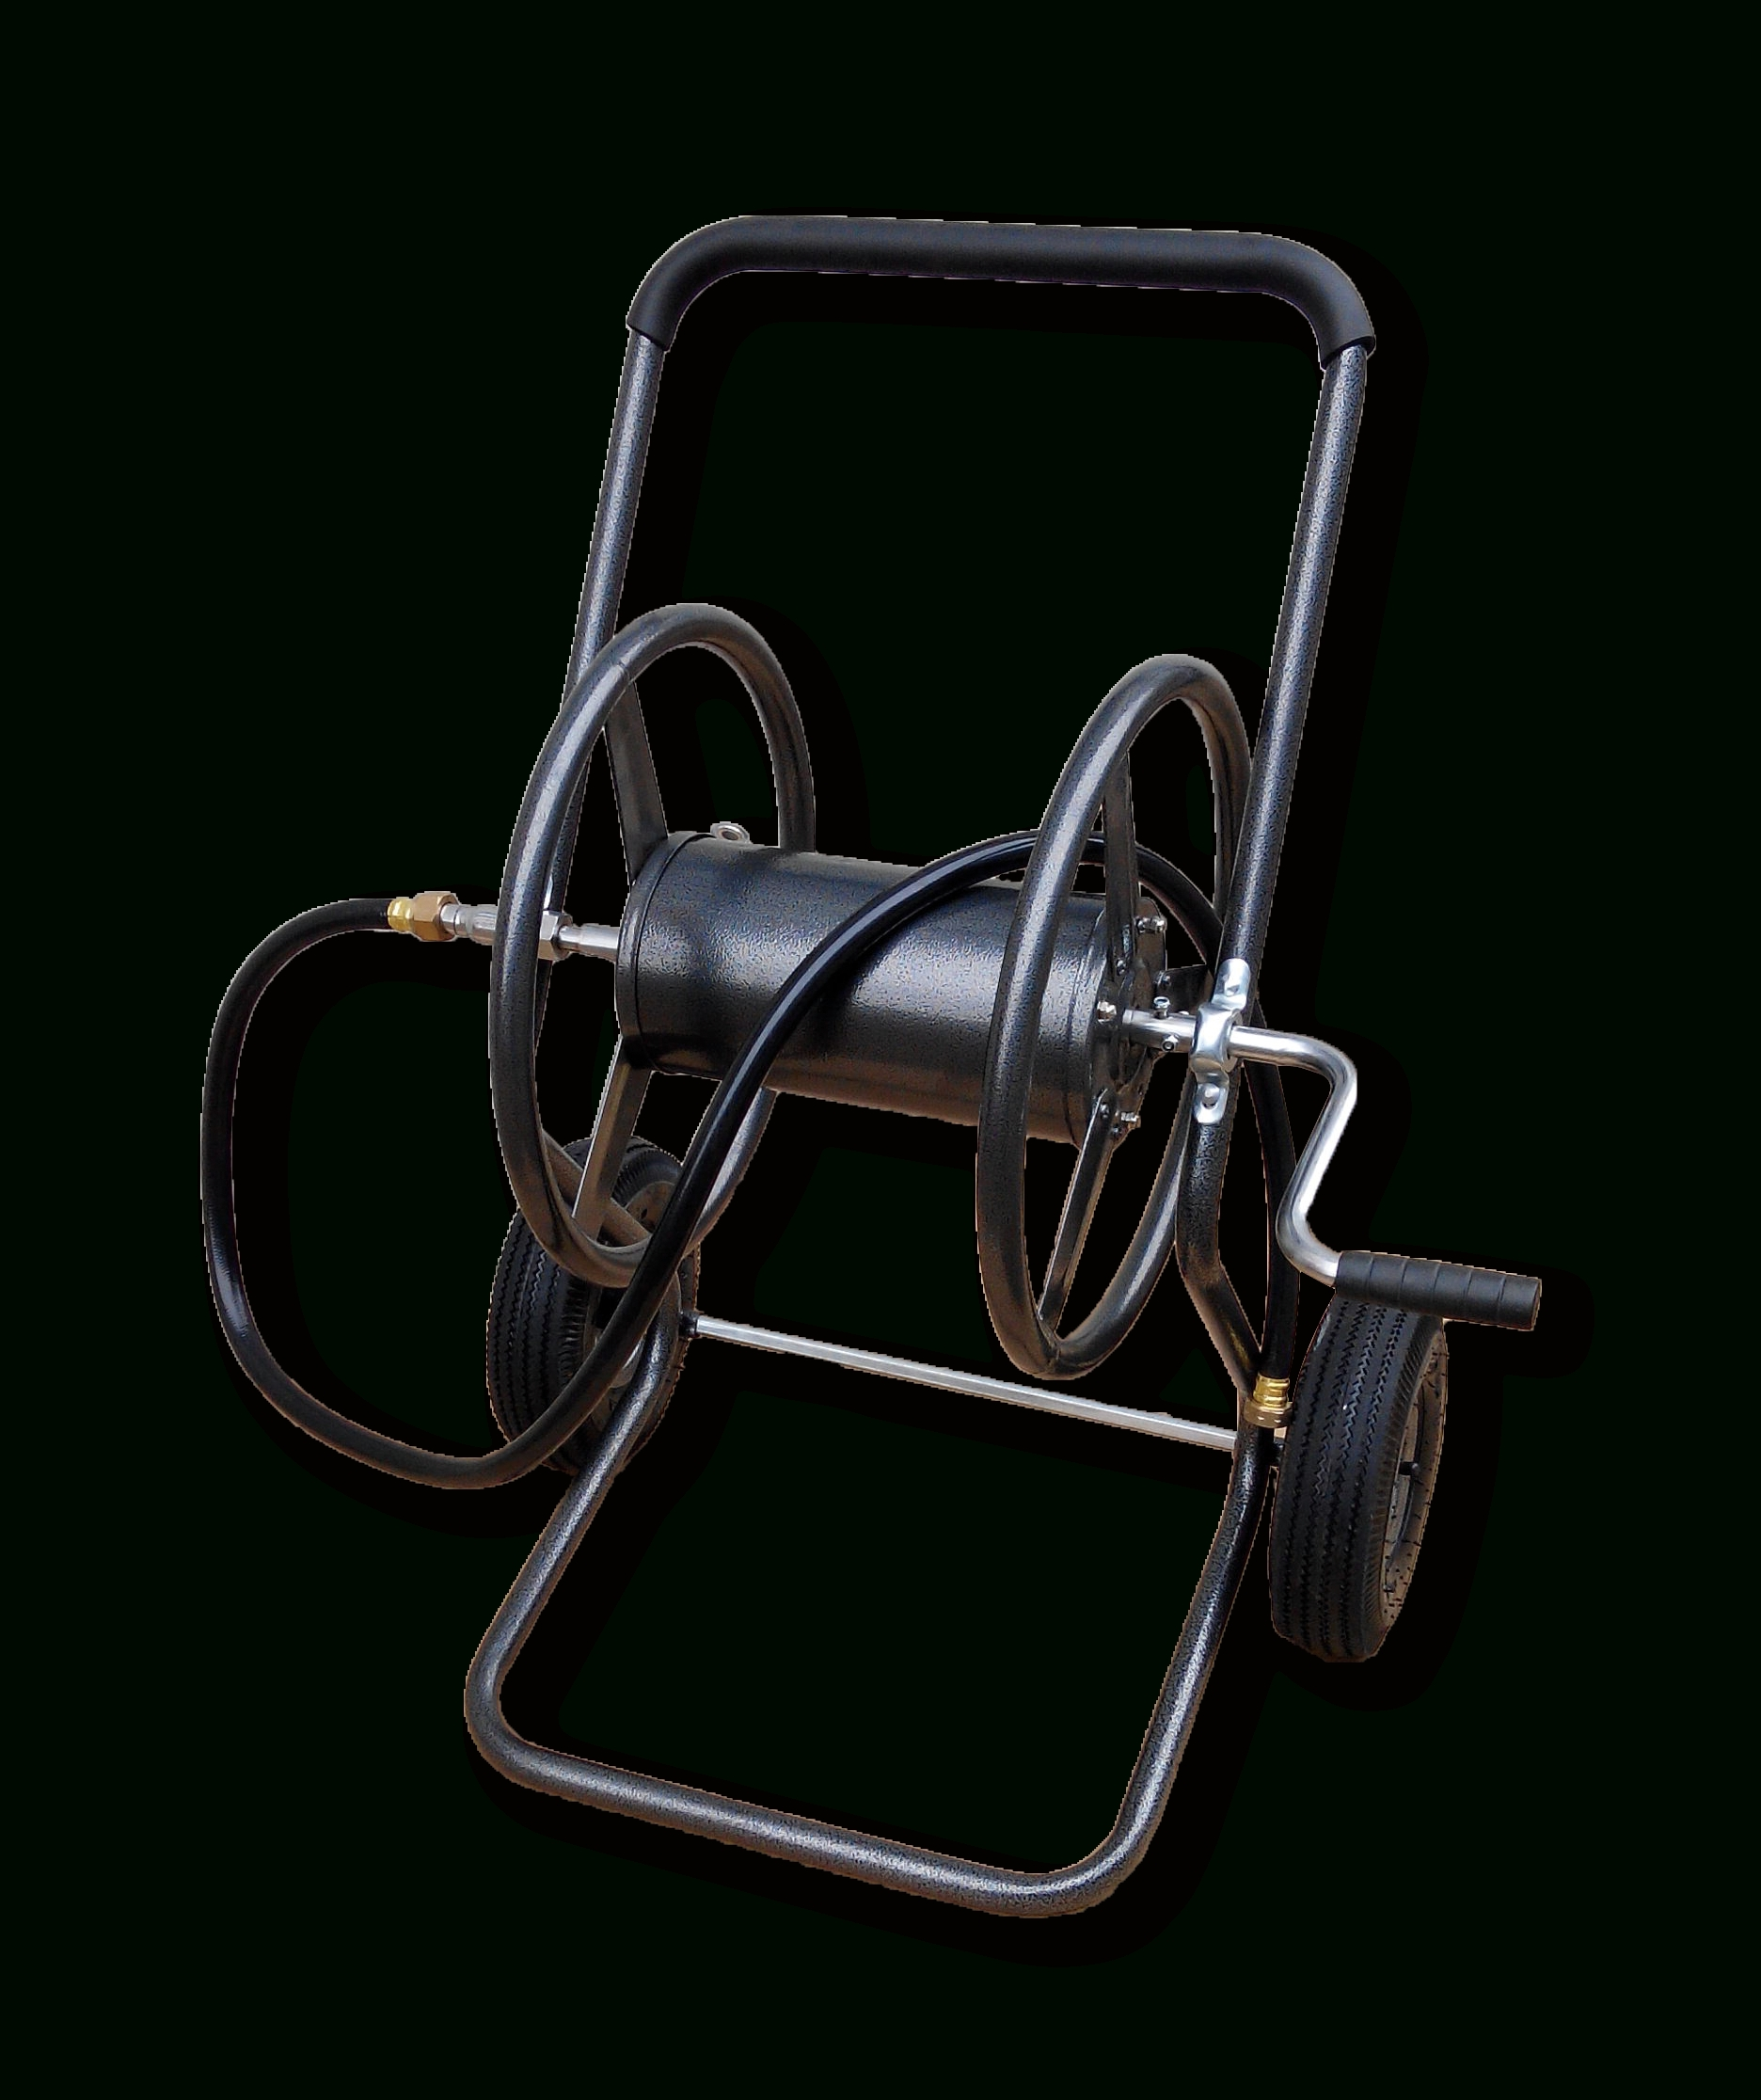 Two Wheel Hose Reel Cart With Leader Hose - Walmart with Backyard Expressions Garden Hose Reel Cart